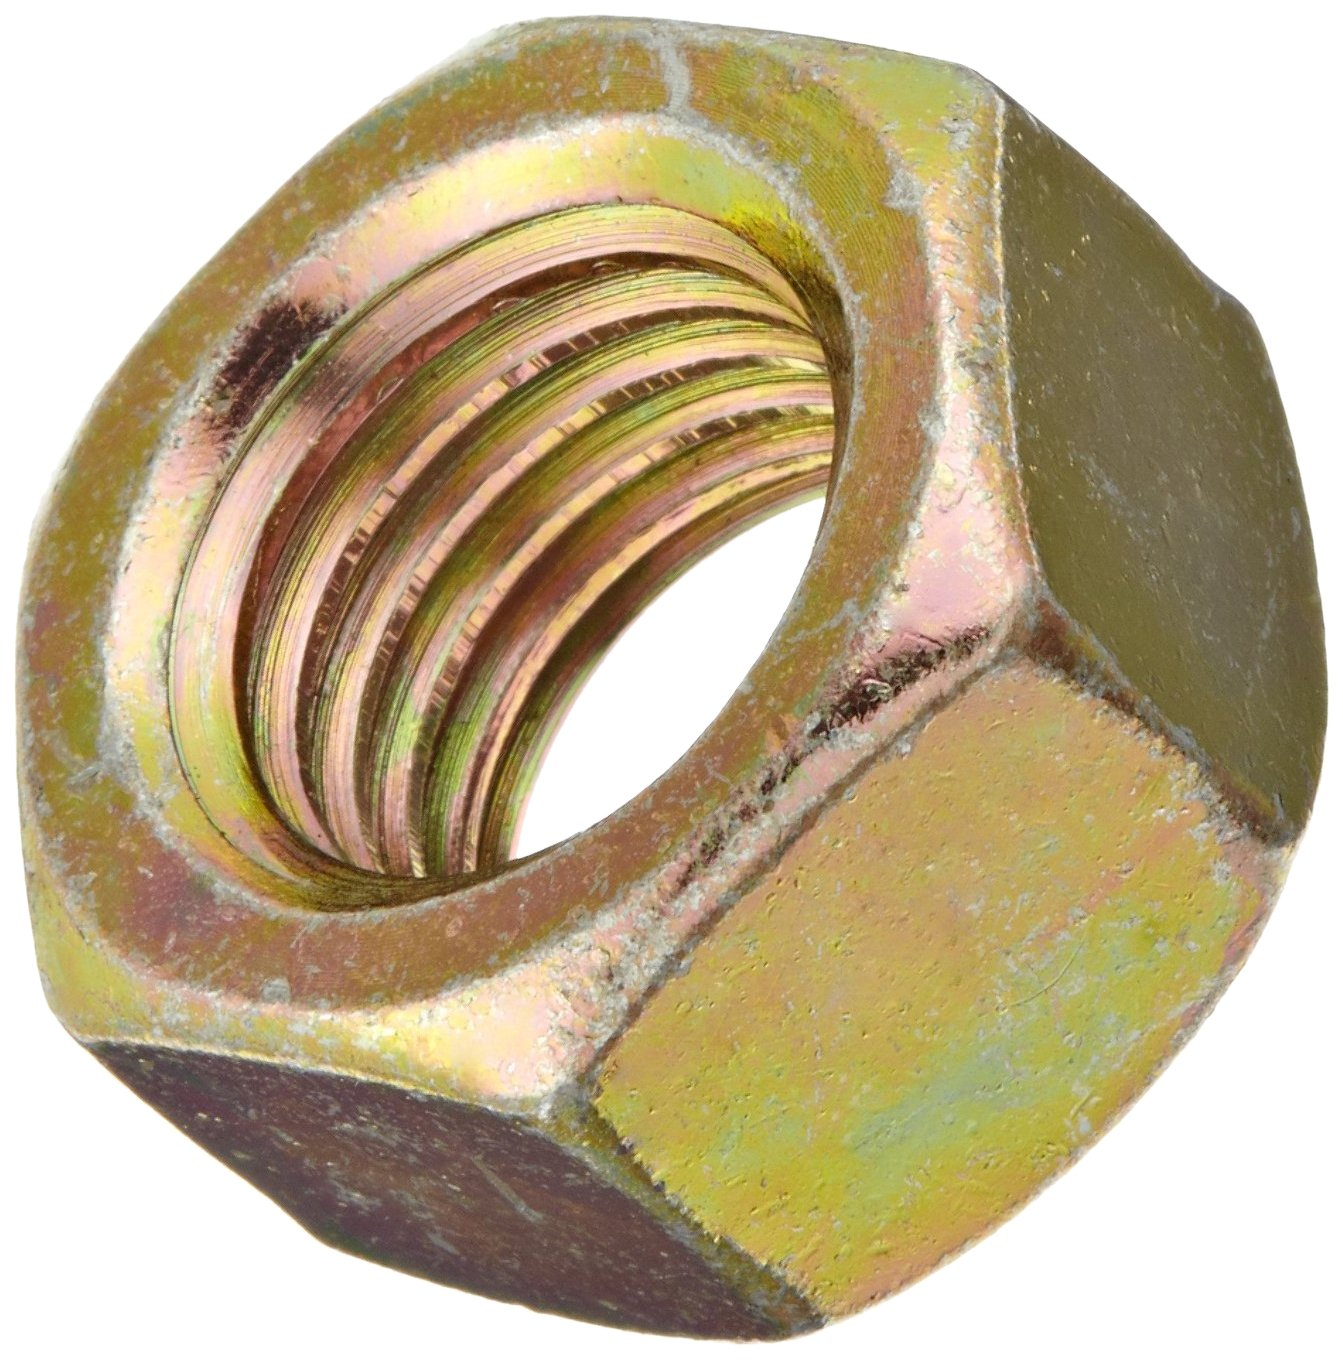 Zinc Yellow-Chromate Plated Finish 0.337 Height Steel Hex Nut 3//8-24 Threads Pack of 100 3//8-24 Threads 0.650 Width Across Flats 0.337 Height 0.650 Width Across Flats Continental-Aero 37FNFH8Y Pack of 100 Grade 8